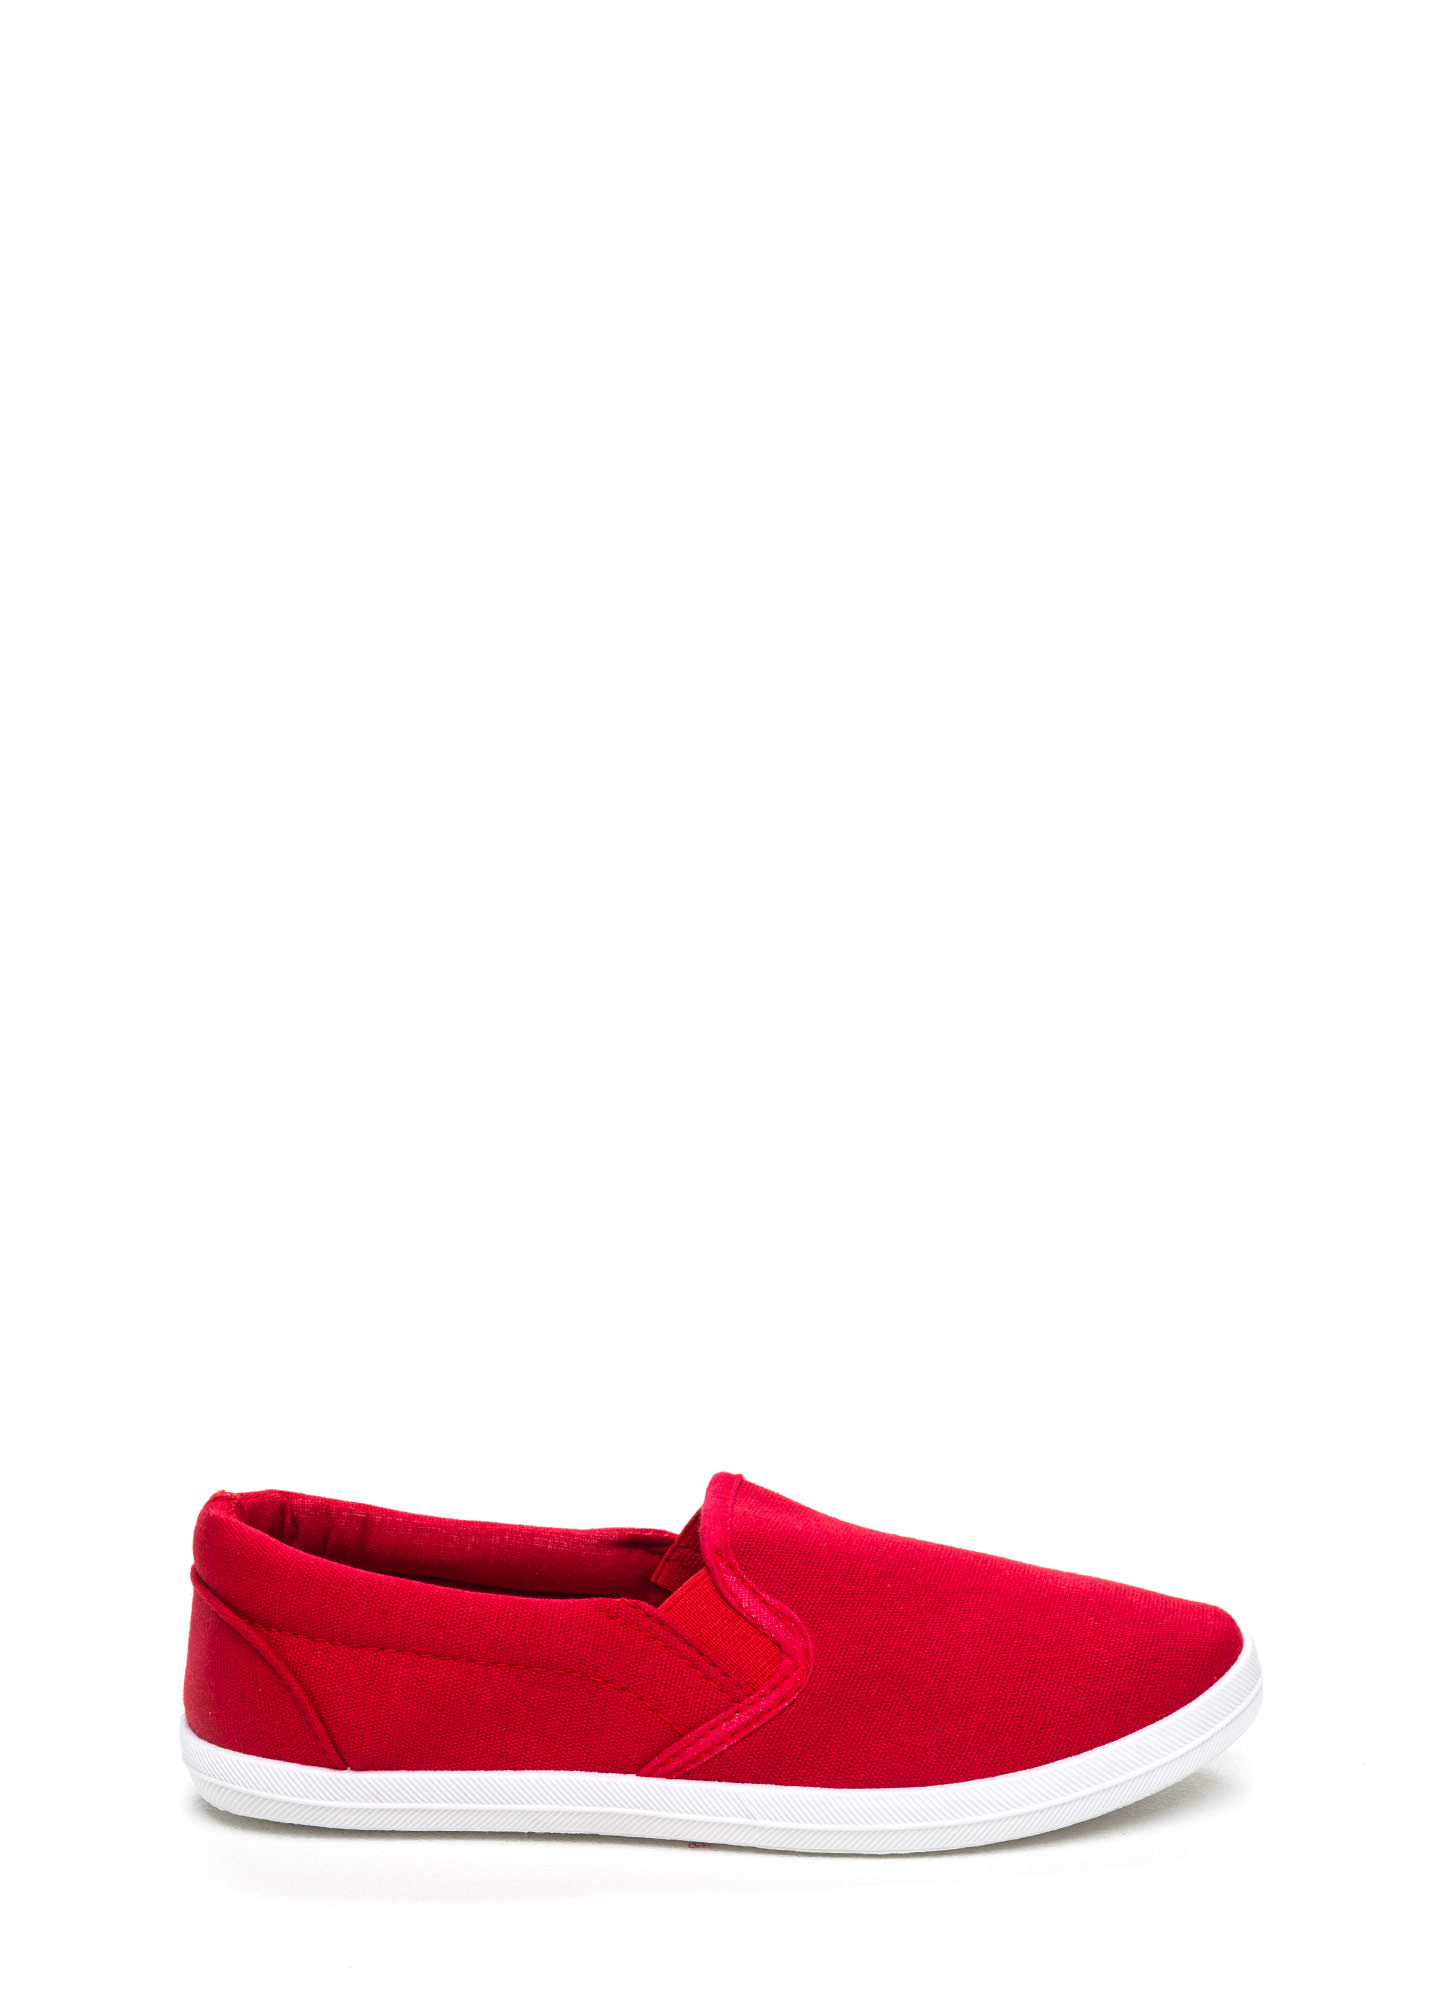 Basic Solid Canvas Skimmers RED (Final Sale)